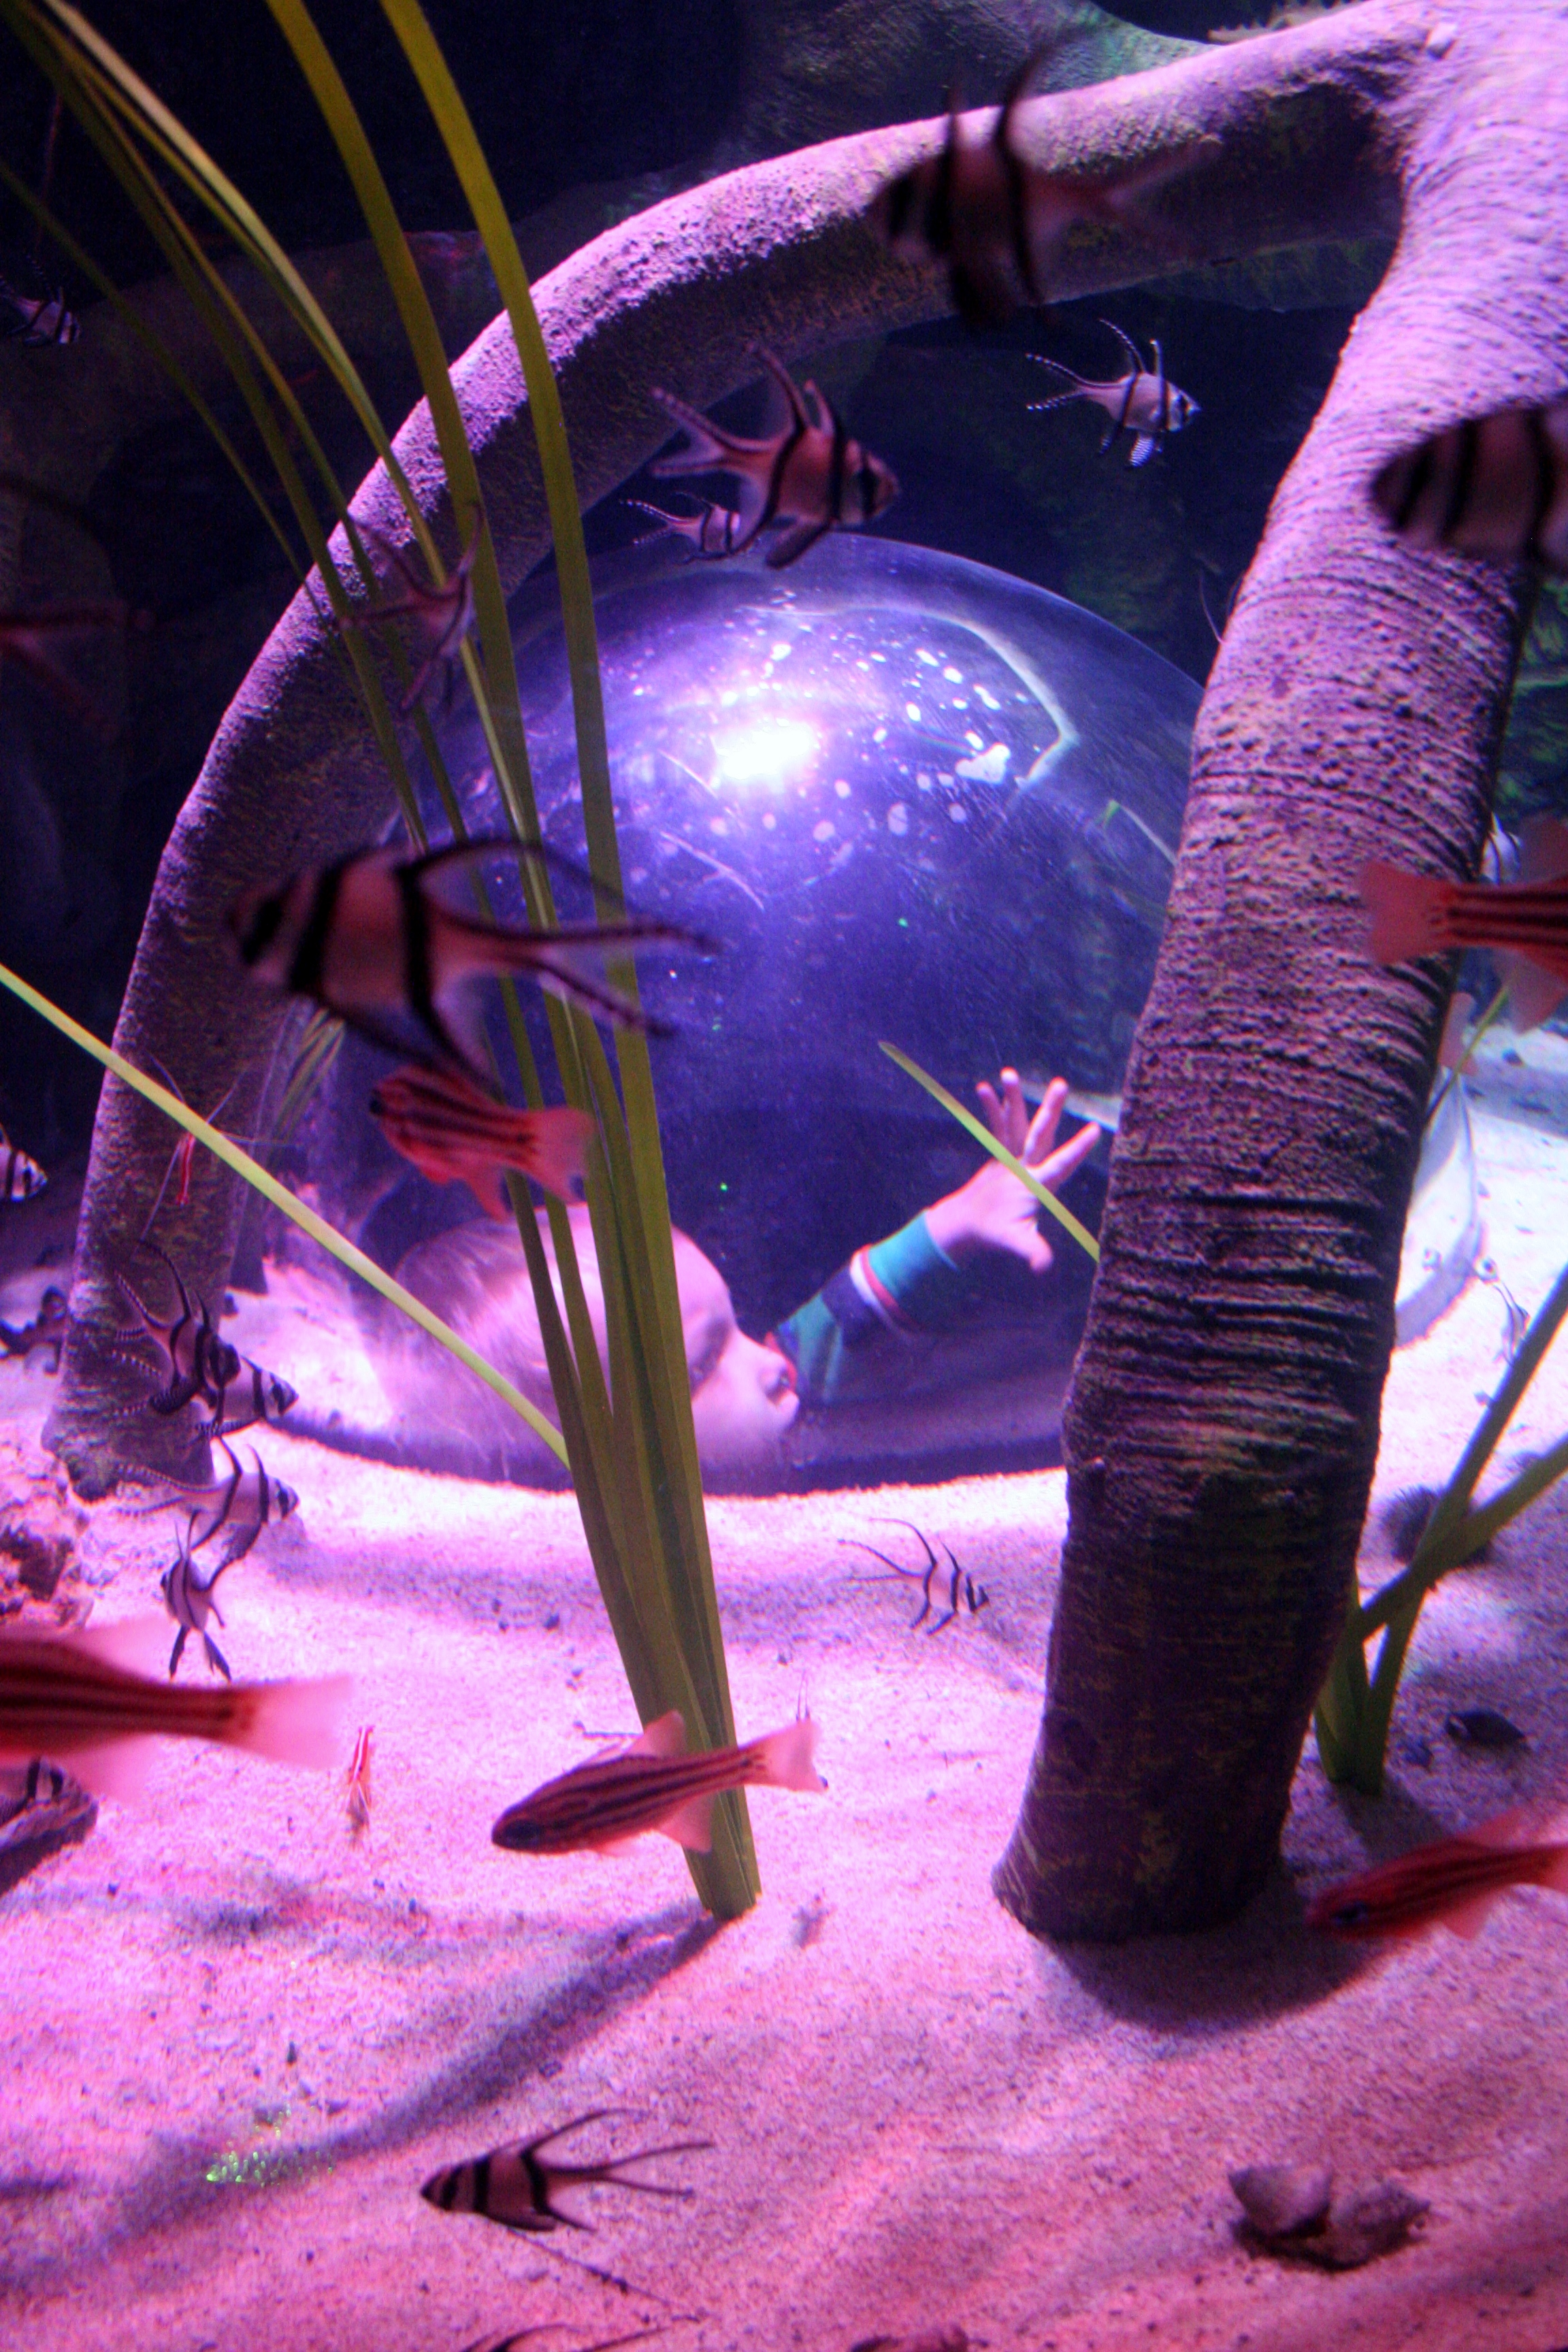 Visit sea life michigan aquarium through 25 pictures for Pop up aquarium